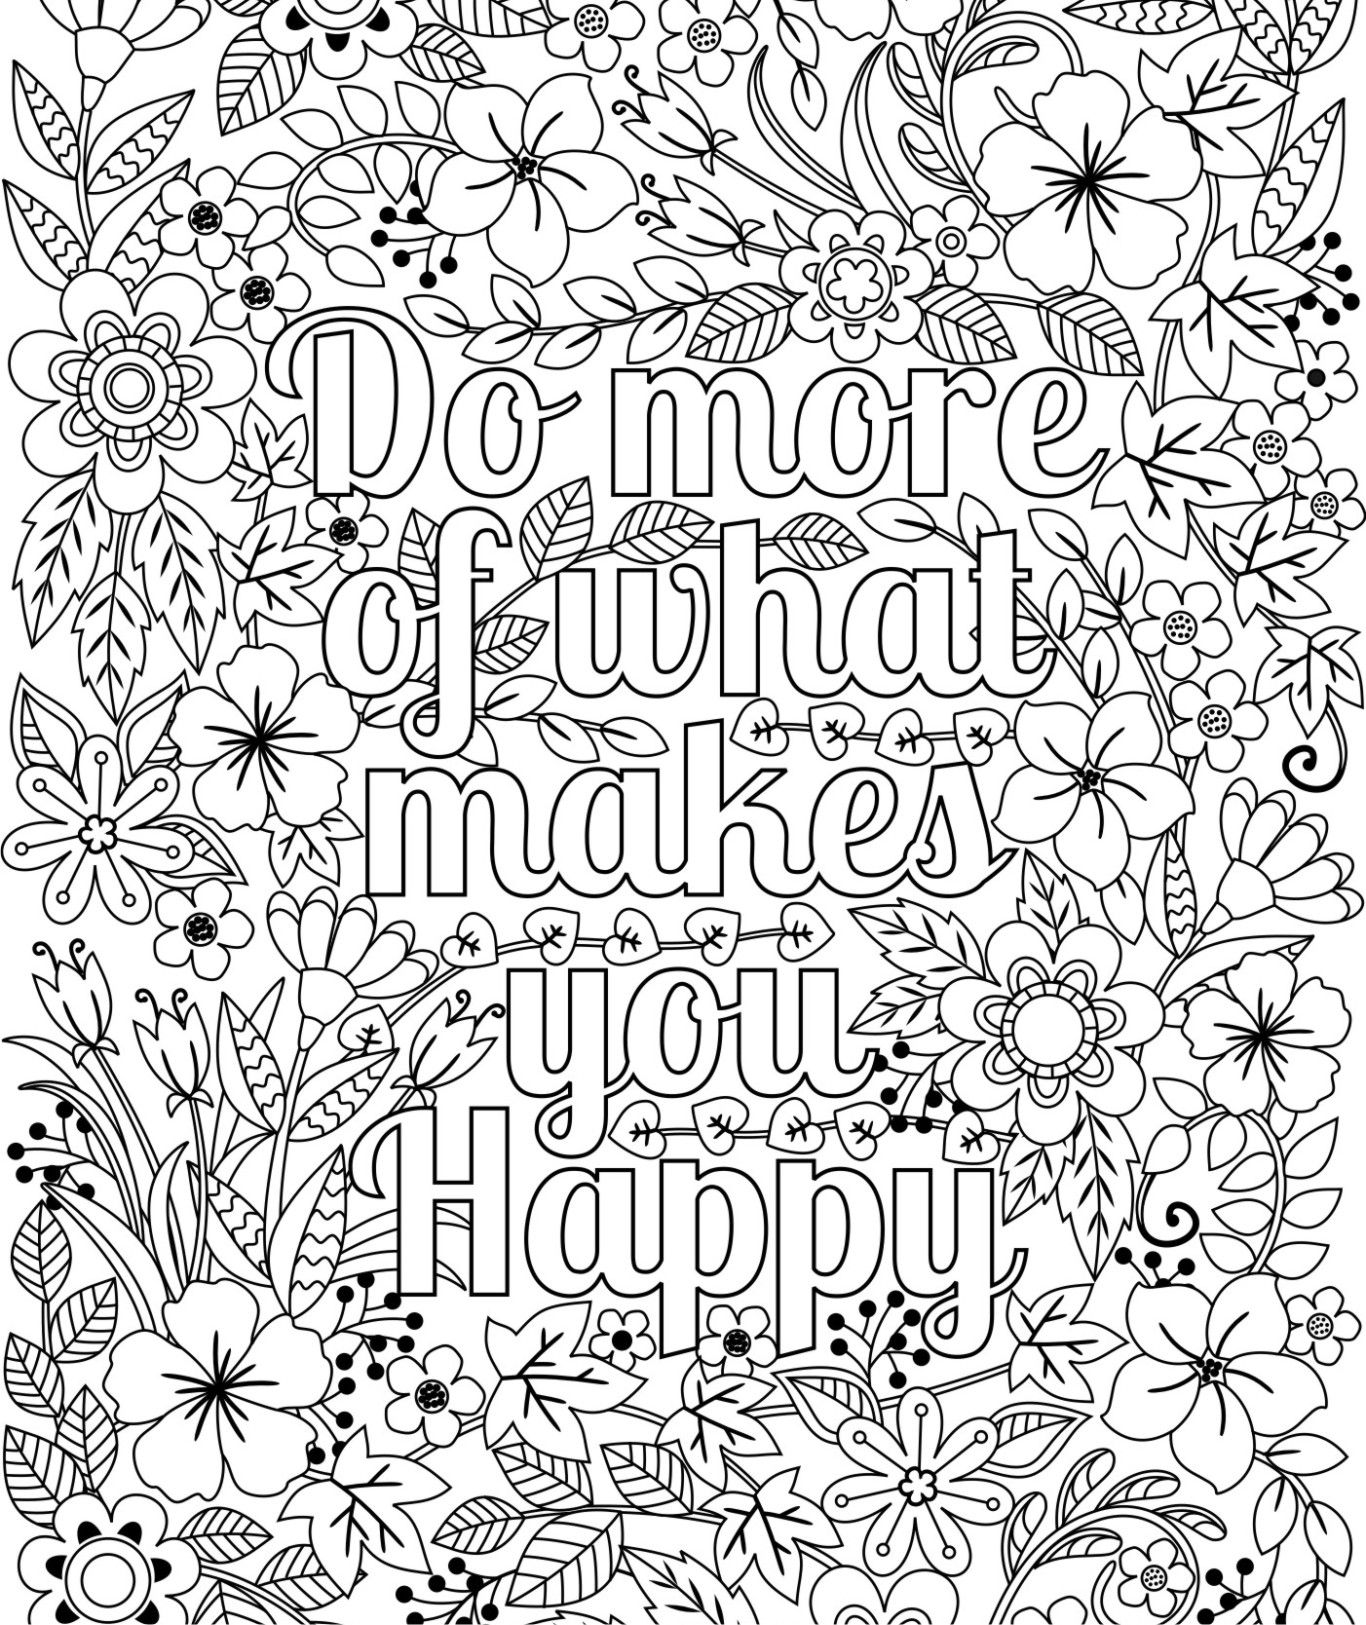 Printable do more of what makes you happy flower design coloring page for